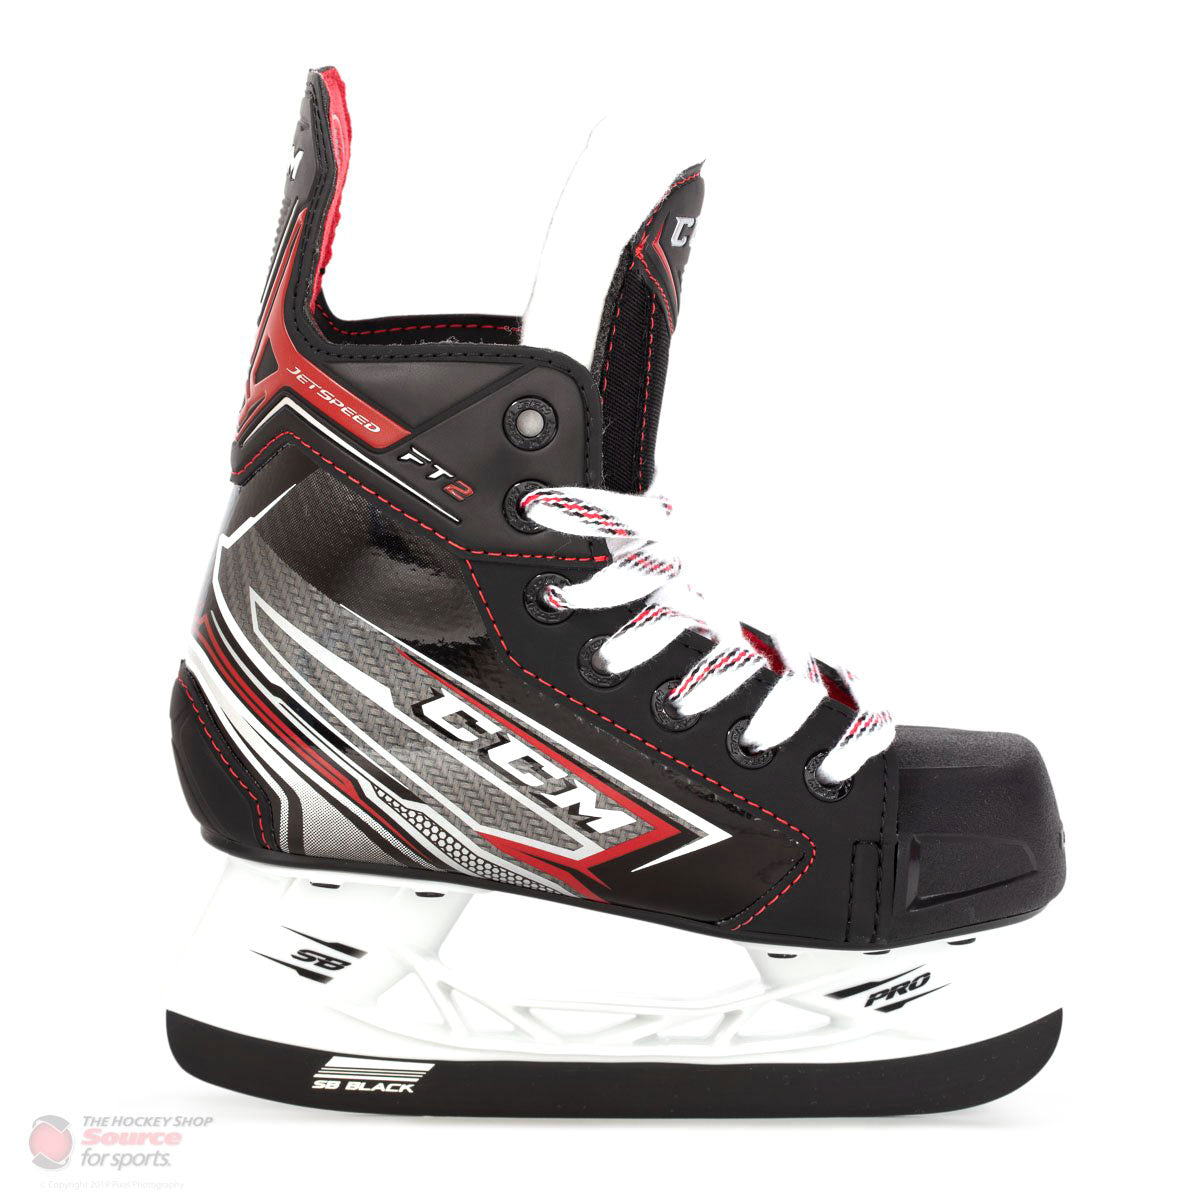 CCM Jetspeed FT2 Youth Hockey Skates